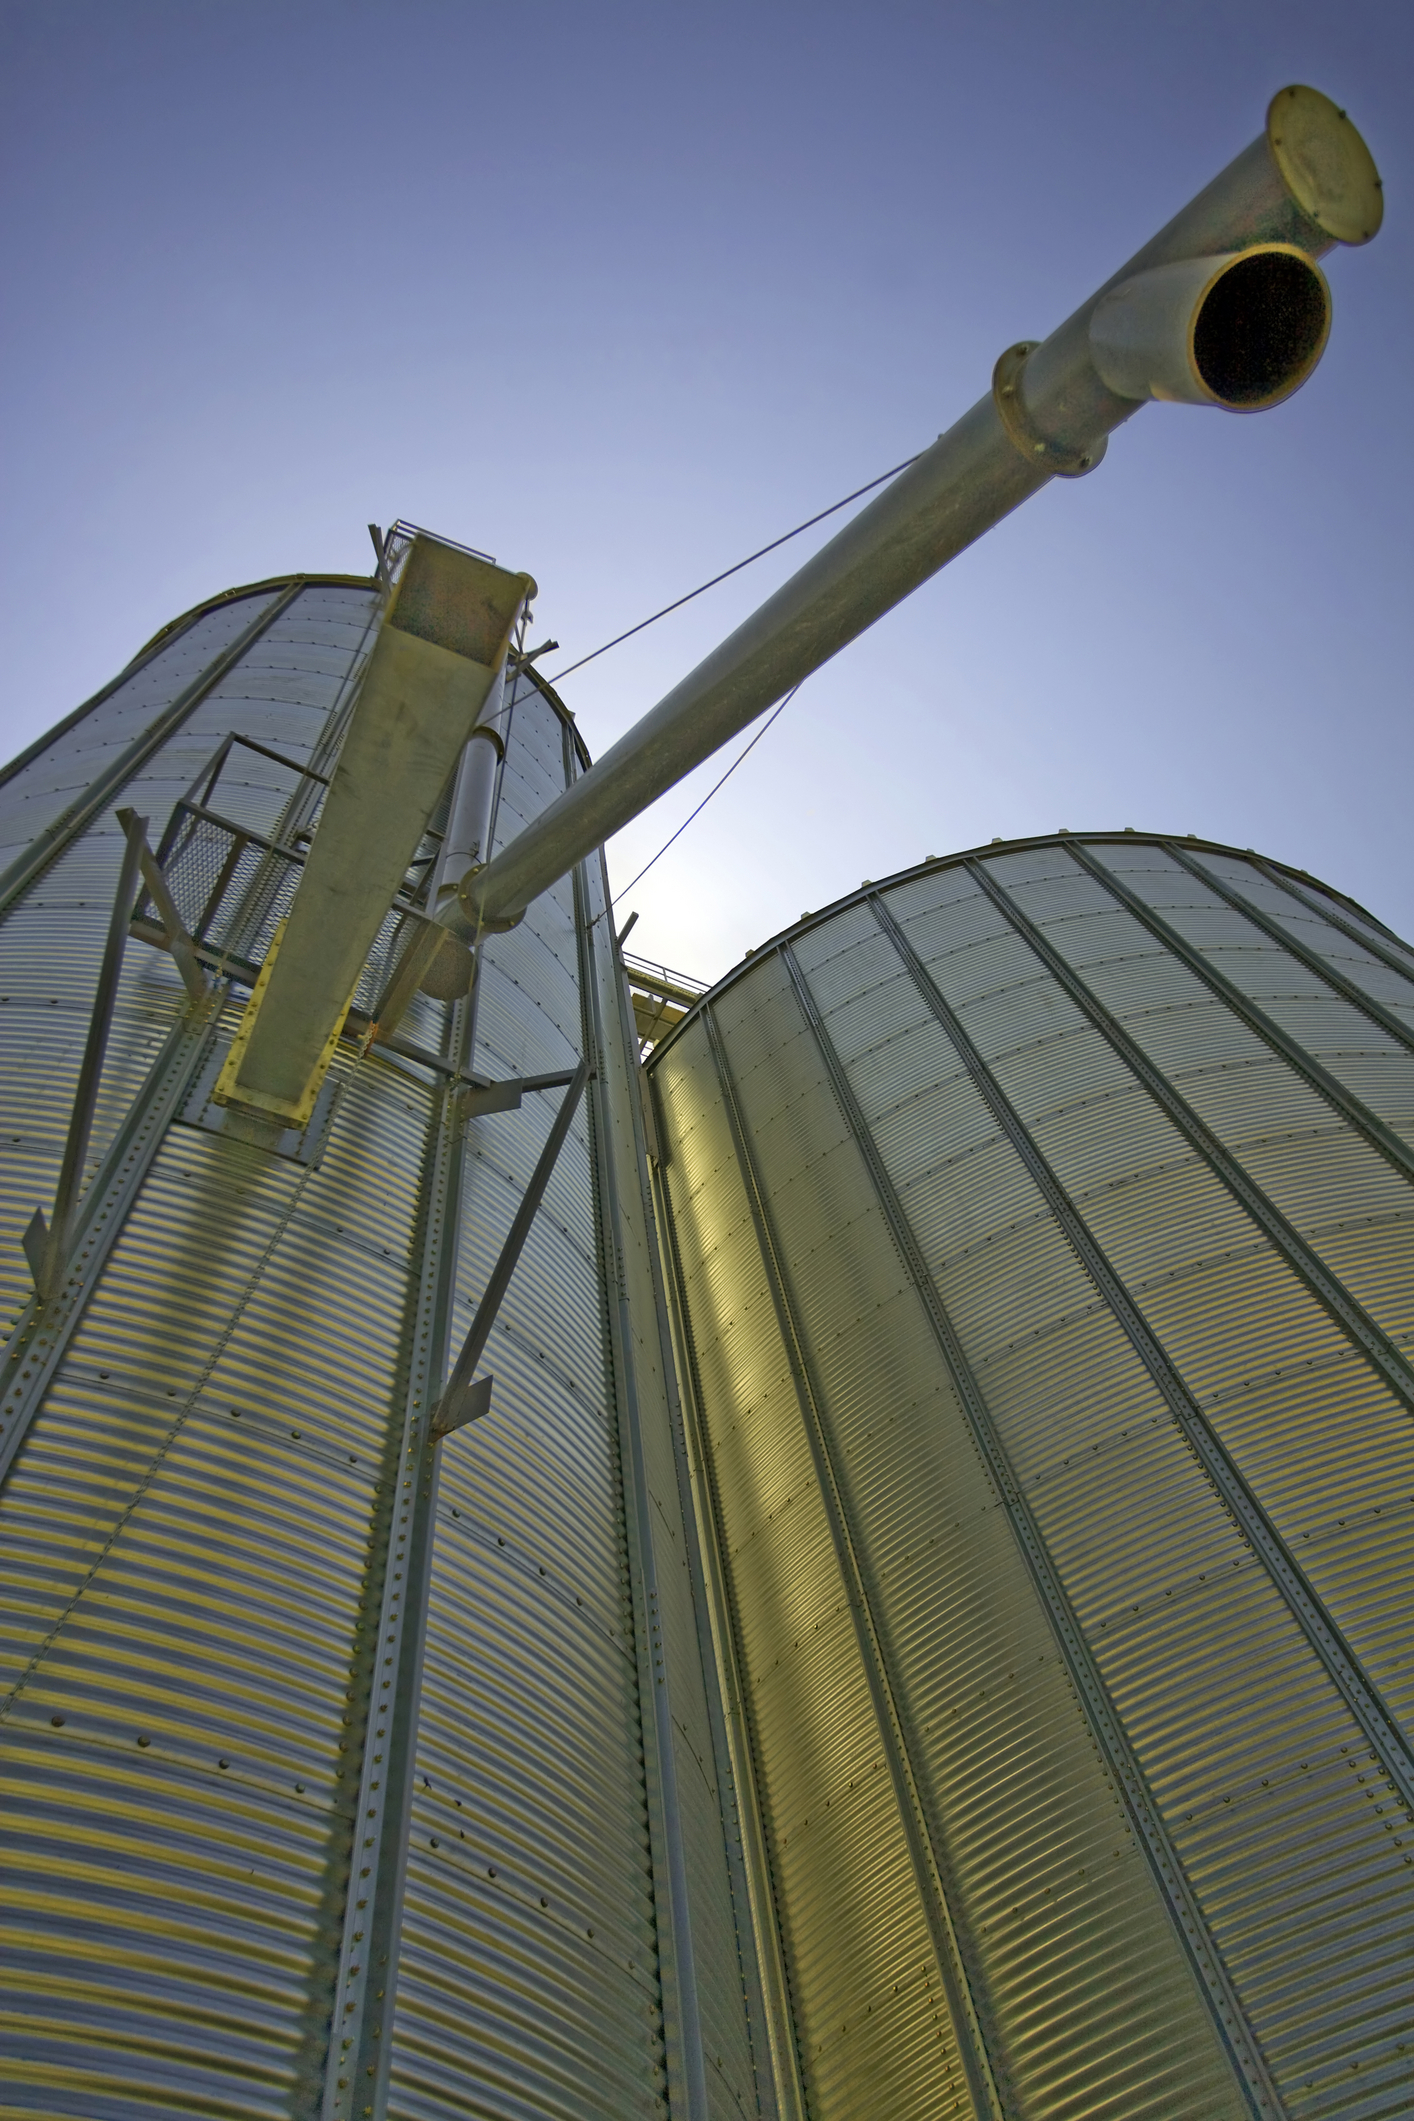 Silo coated for non-stick and friction reduction